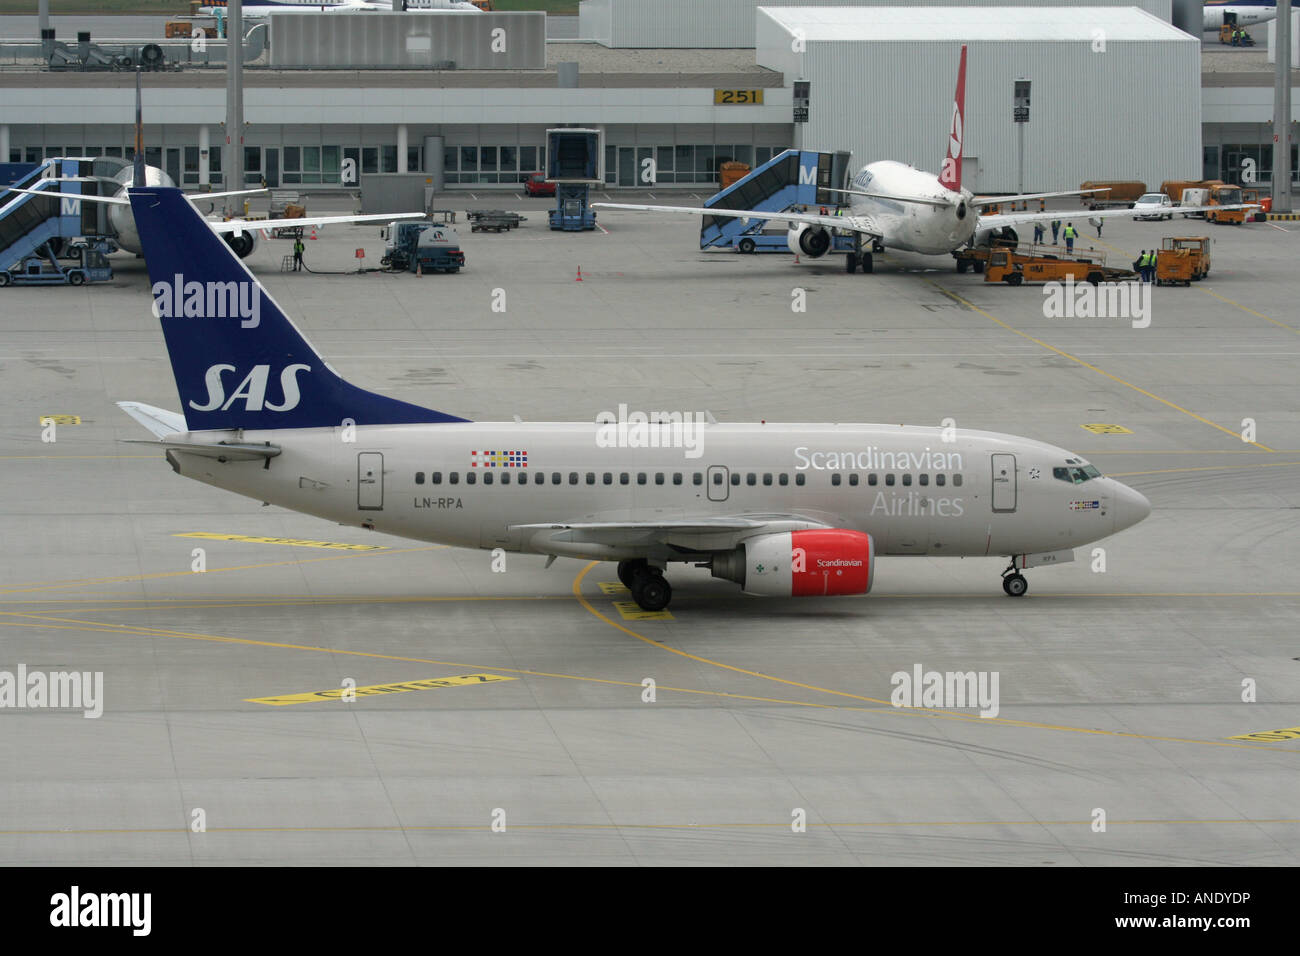 Sas München sas scandinavian airlines boeing 737 600 taxiing at munich airport